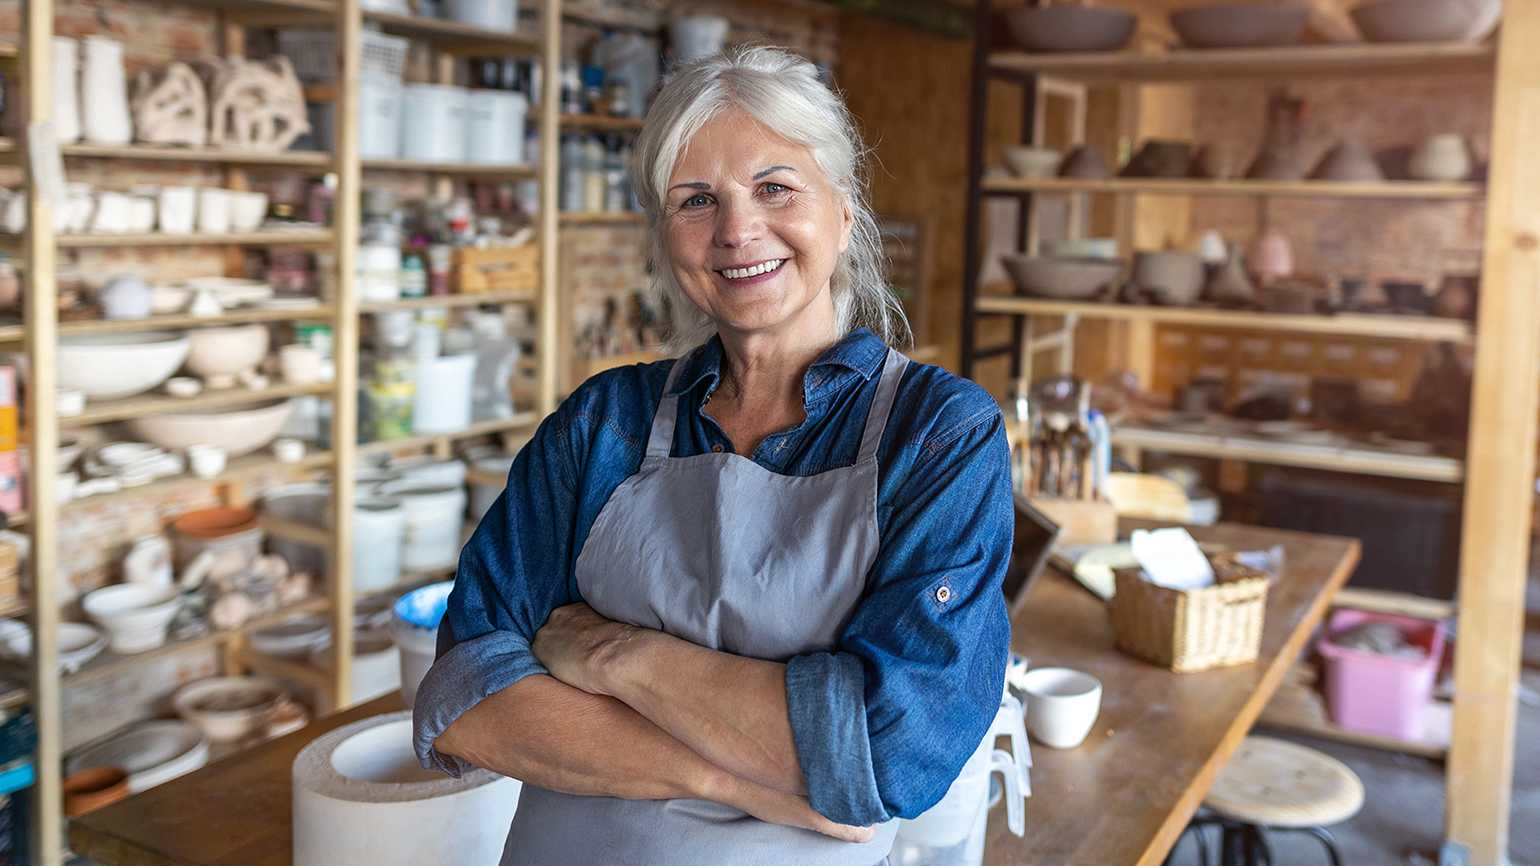 A smiling senior woman in her pottery studio